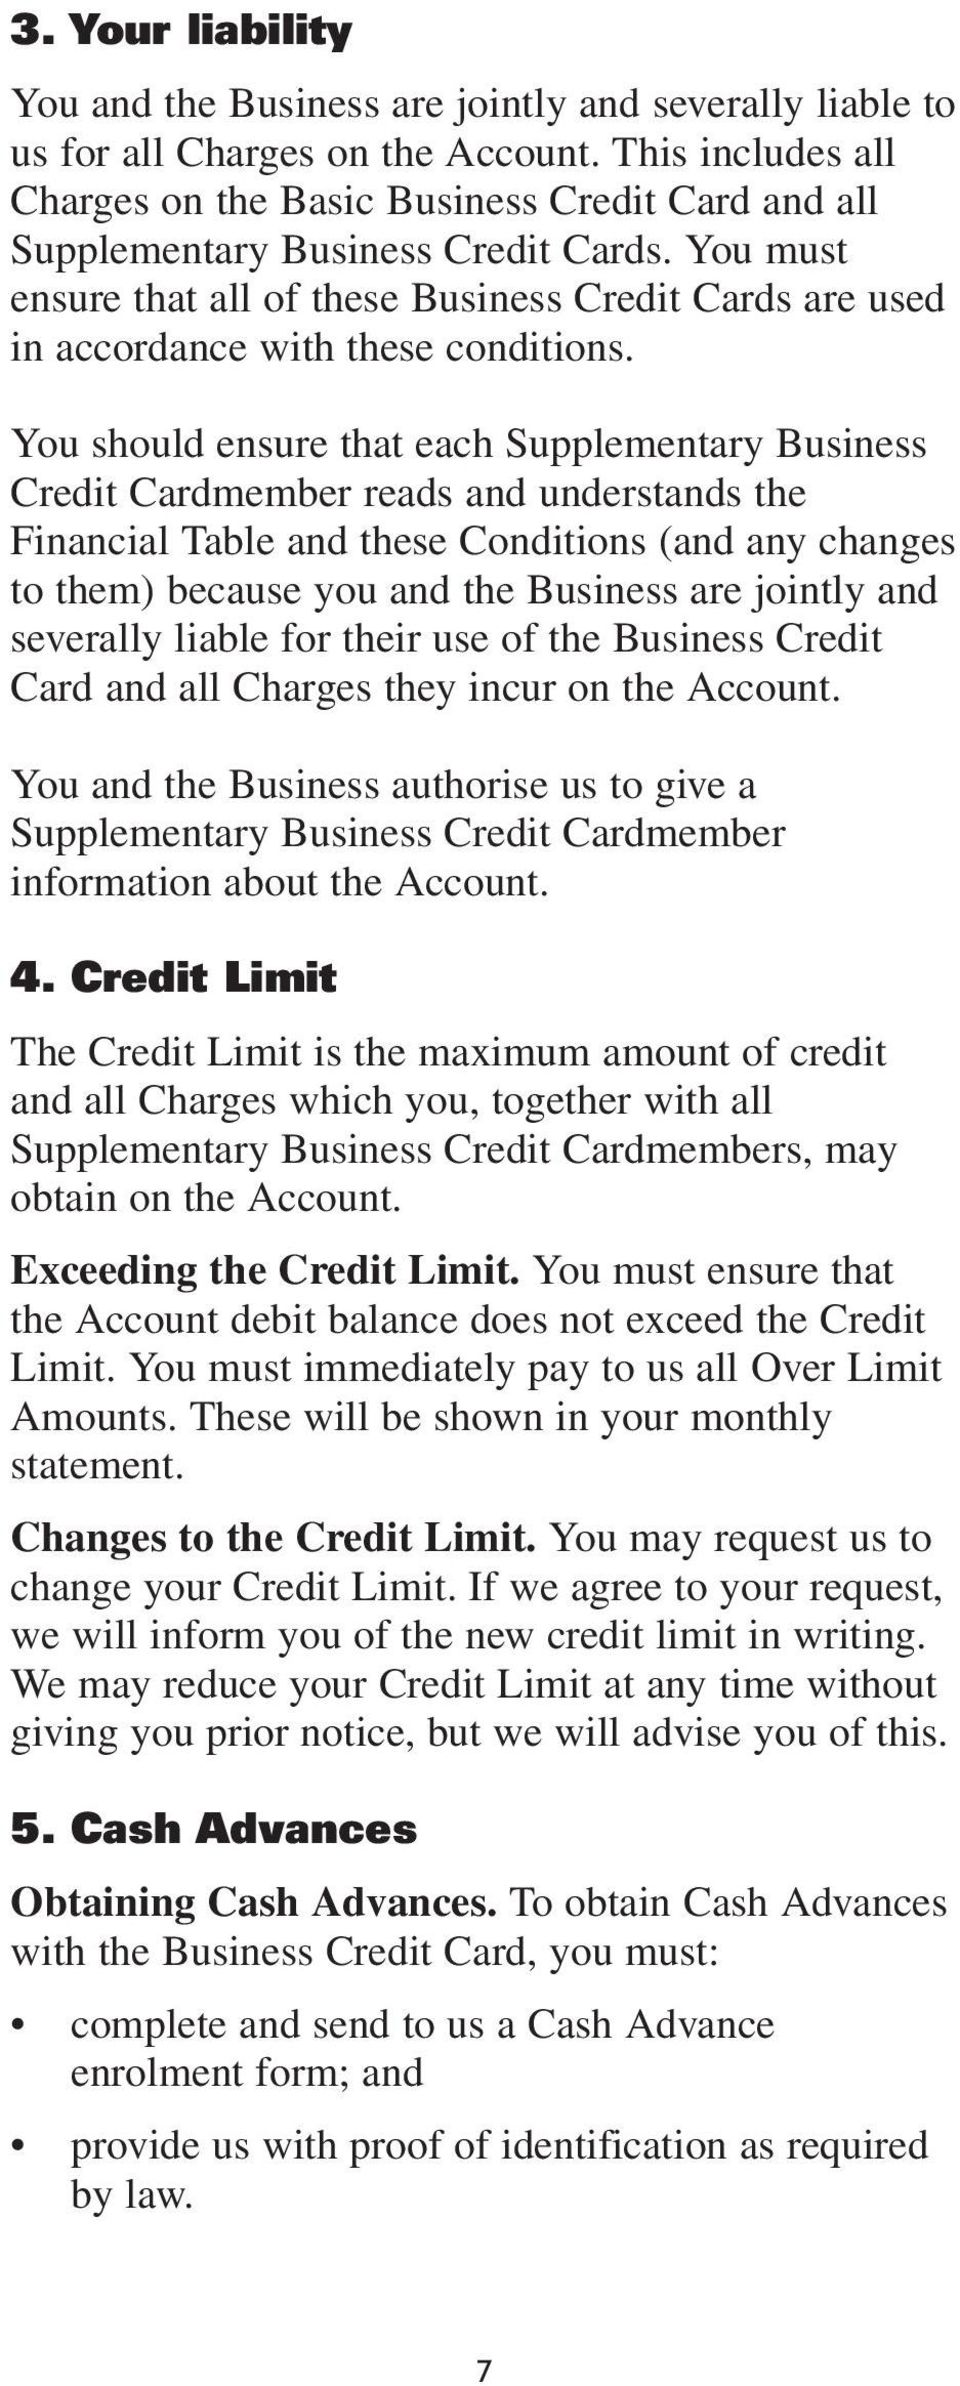 You must ensure that all of these Business Credit Cards are used in accordance with these conditions.